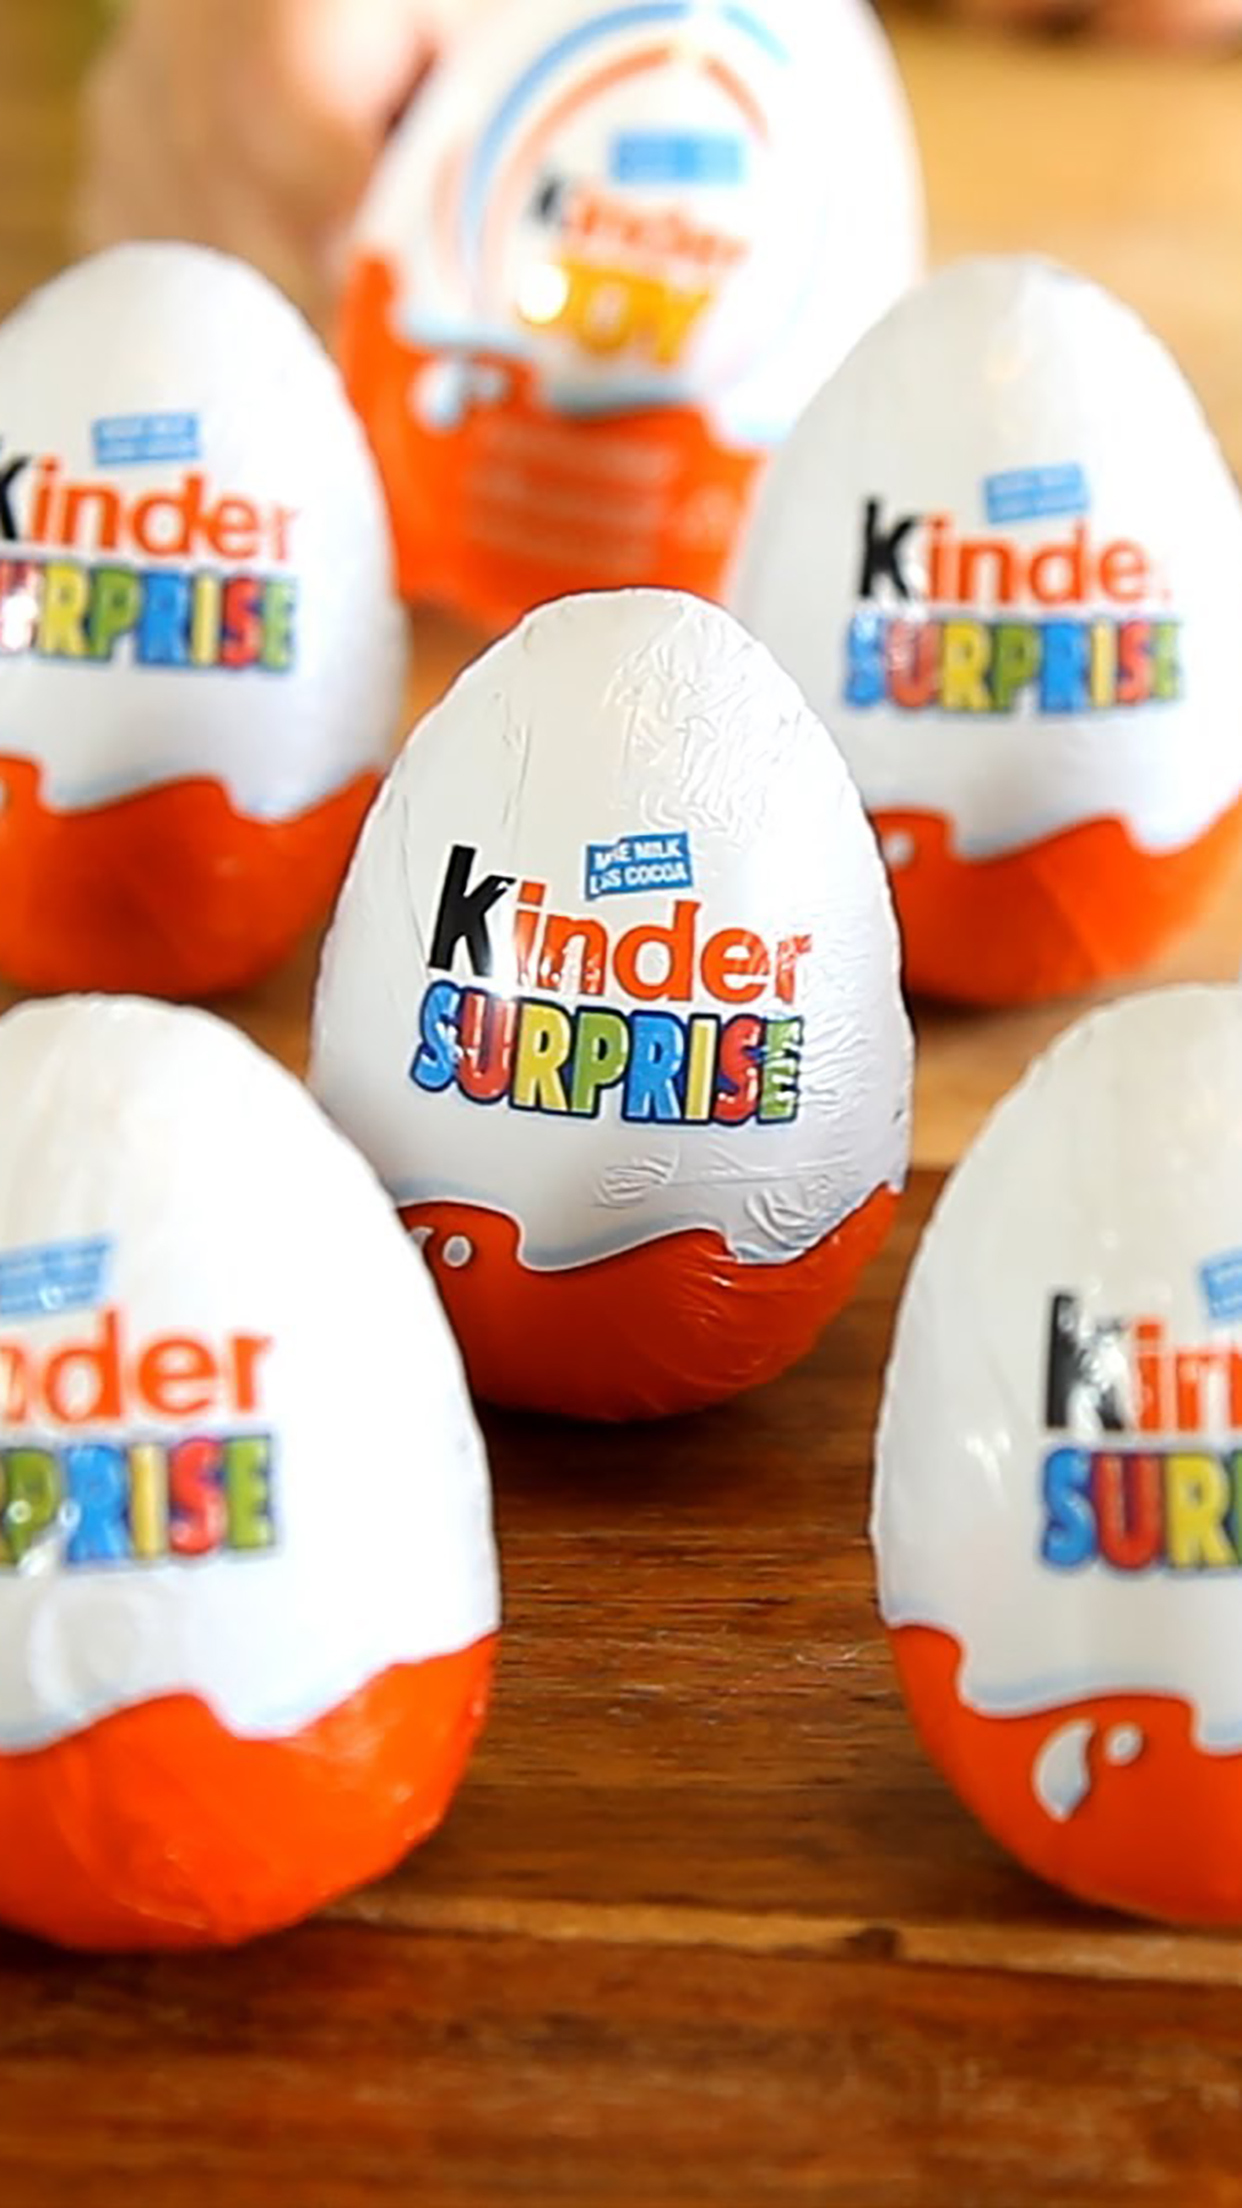 Kinder surprise 3Wallpapers iPhone Parallax Kinder surprise